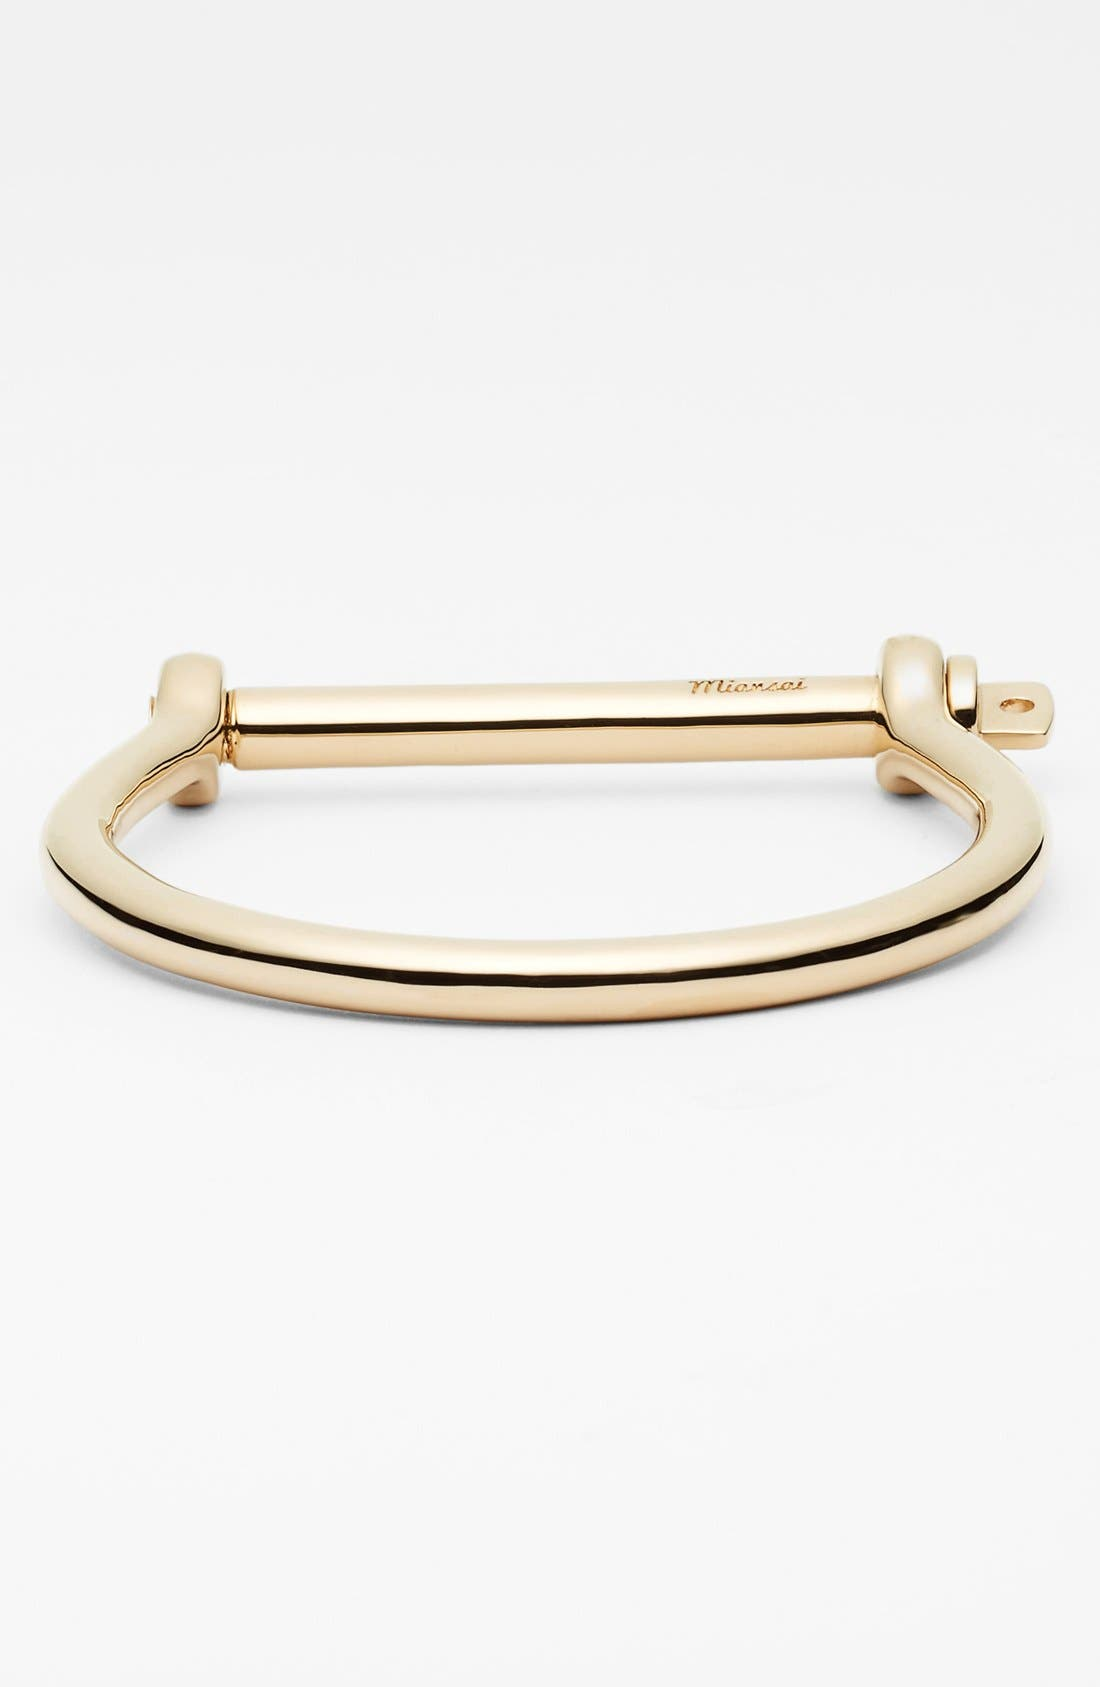 Gold Plated Screw Cuff Bracelet,                             Main thumbnail 1, color,                             Gold Polished